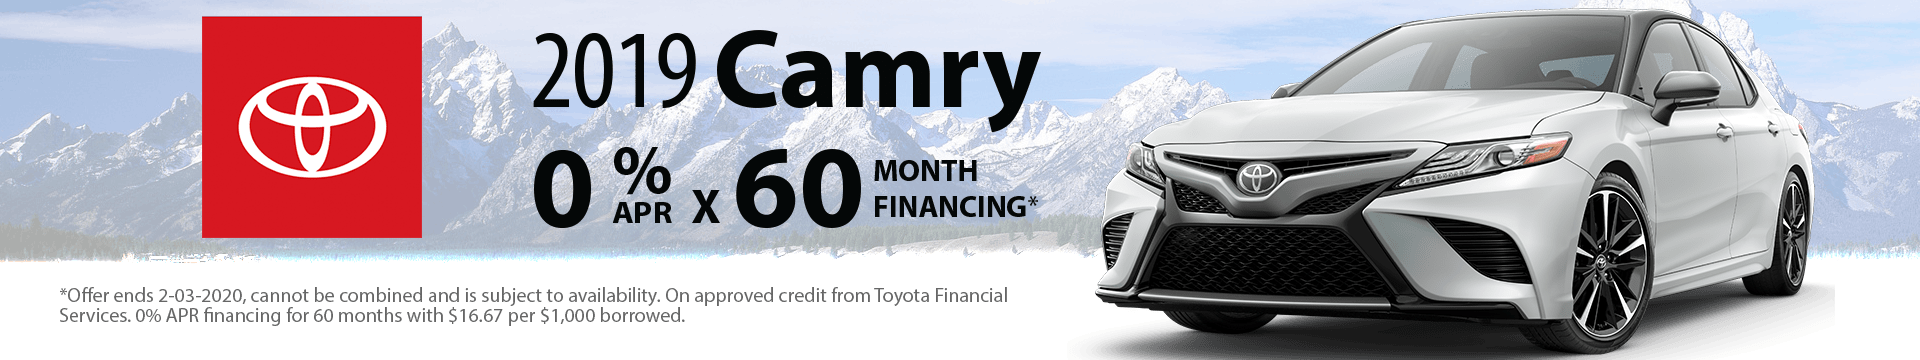 2019 Camry 0% x 60 months Special Finance Offer